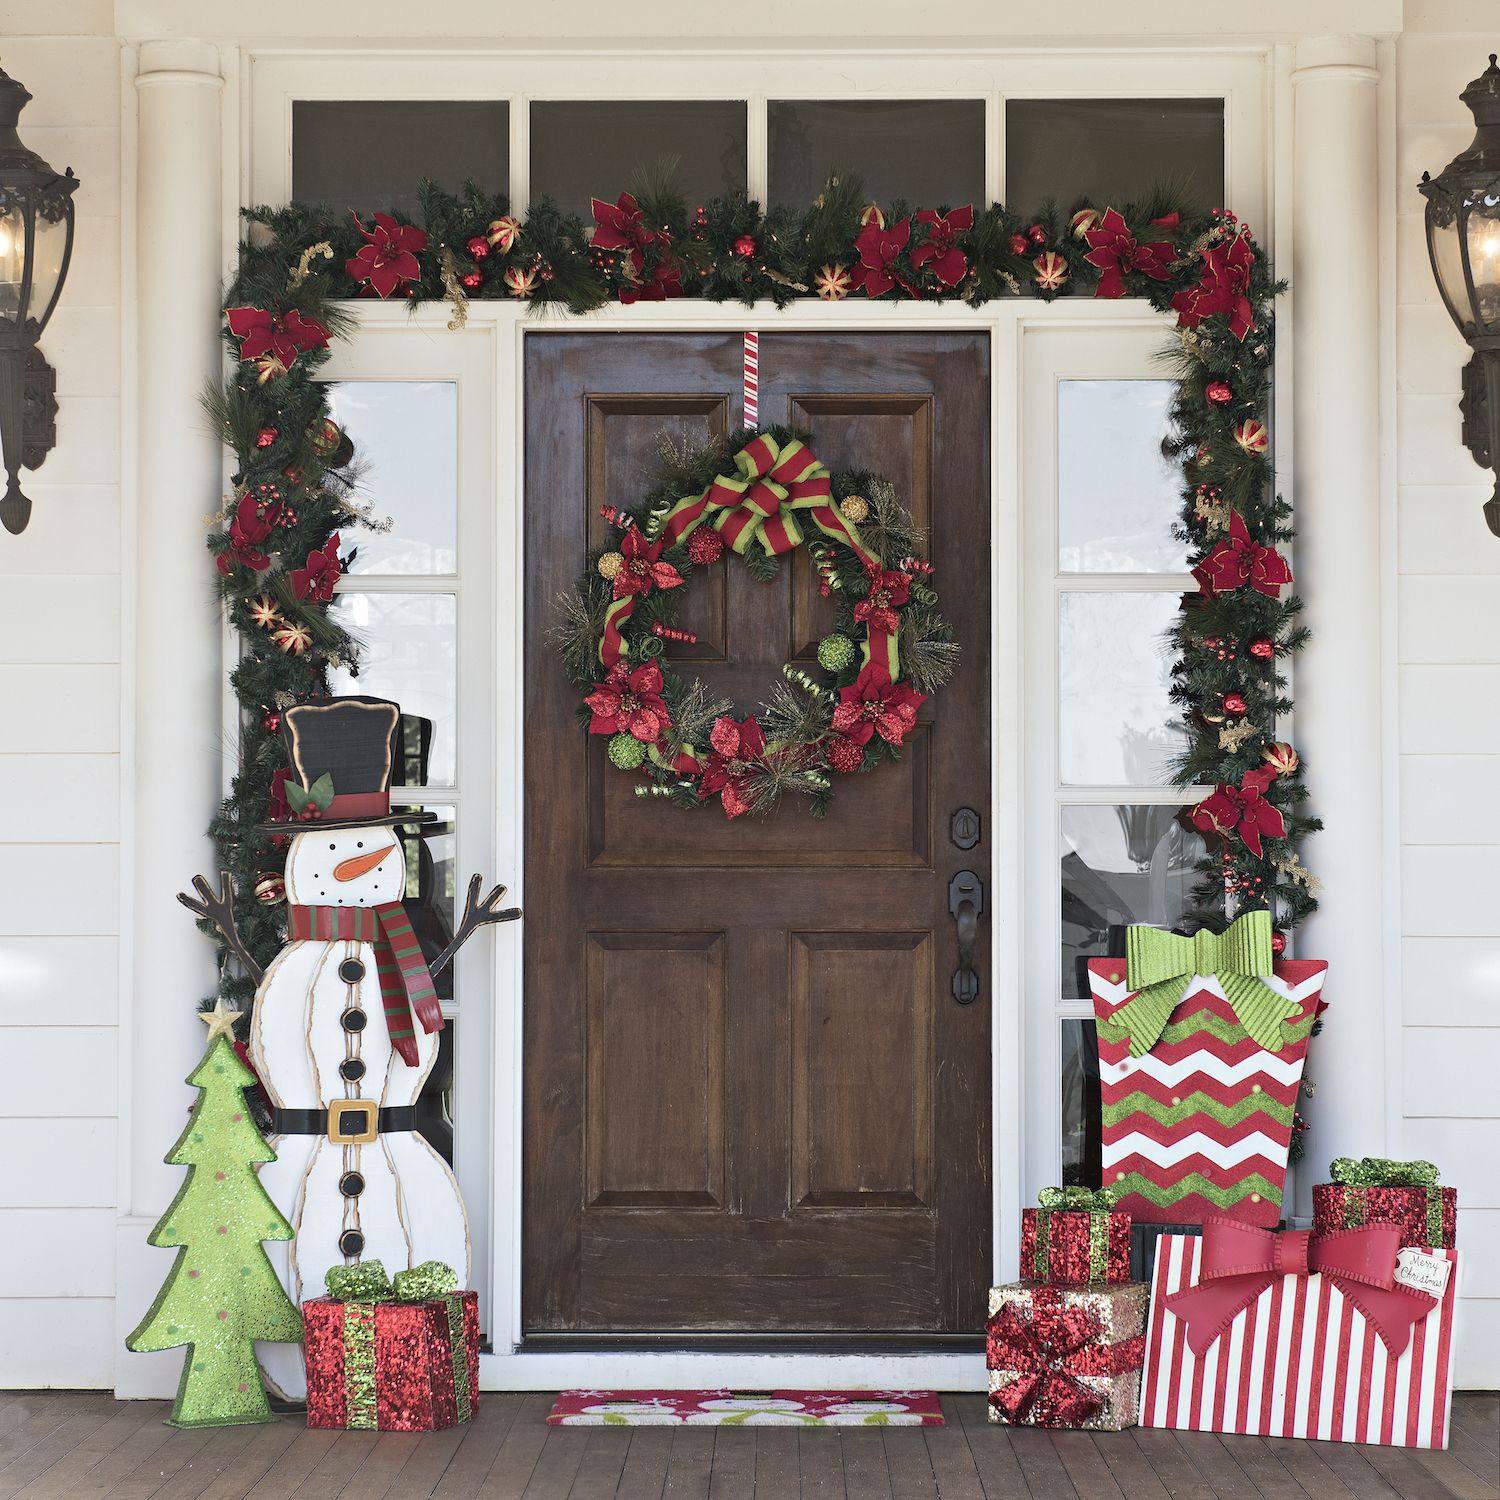 Decorating Your House for Christmas | Merry christmas ...